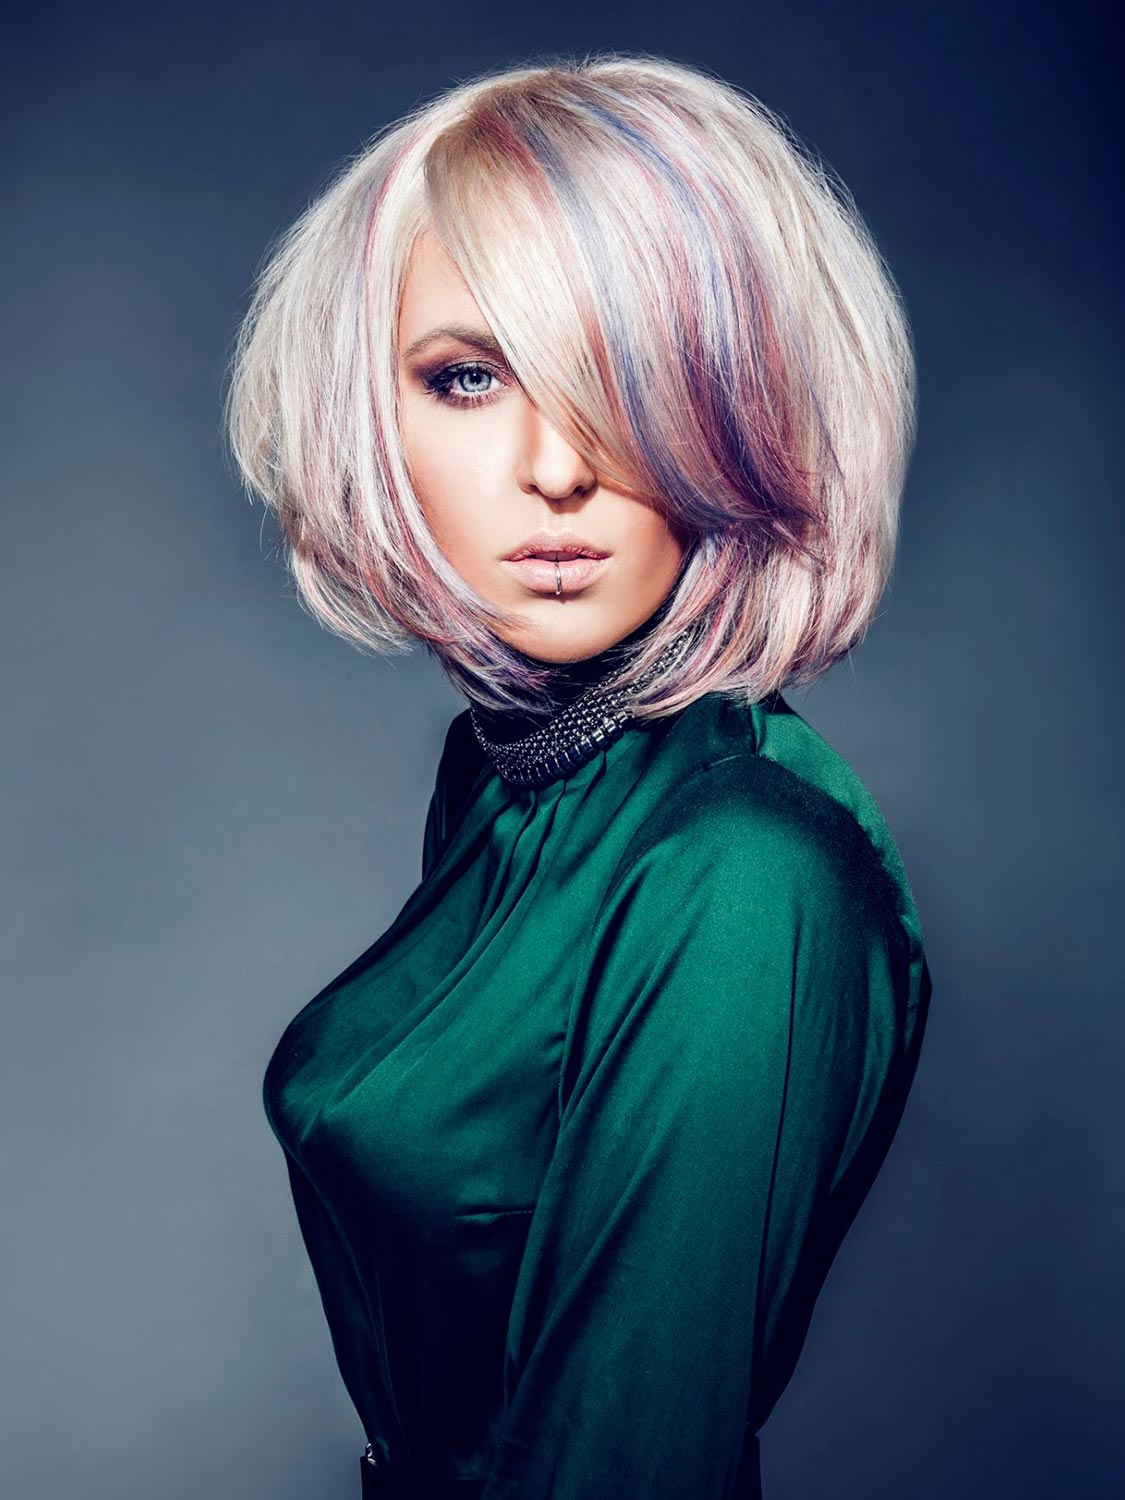 Patrik Hagara, Kadeřnictví Sanett, Praha – nominace v soutěžní kategorii Color Zoom Collection 2015 GLOBAL NEW TALENT COLORIST.